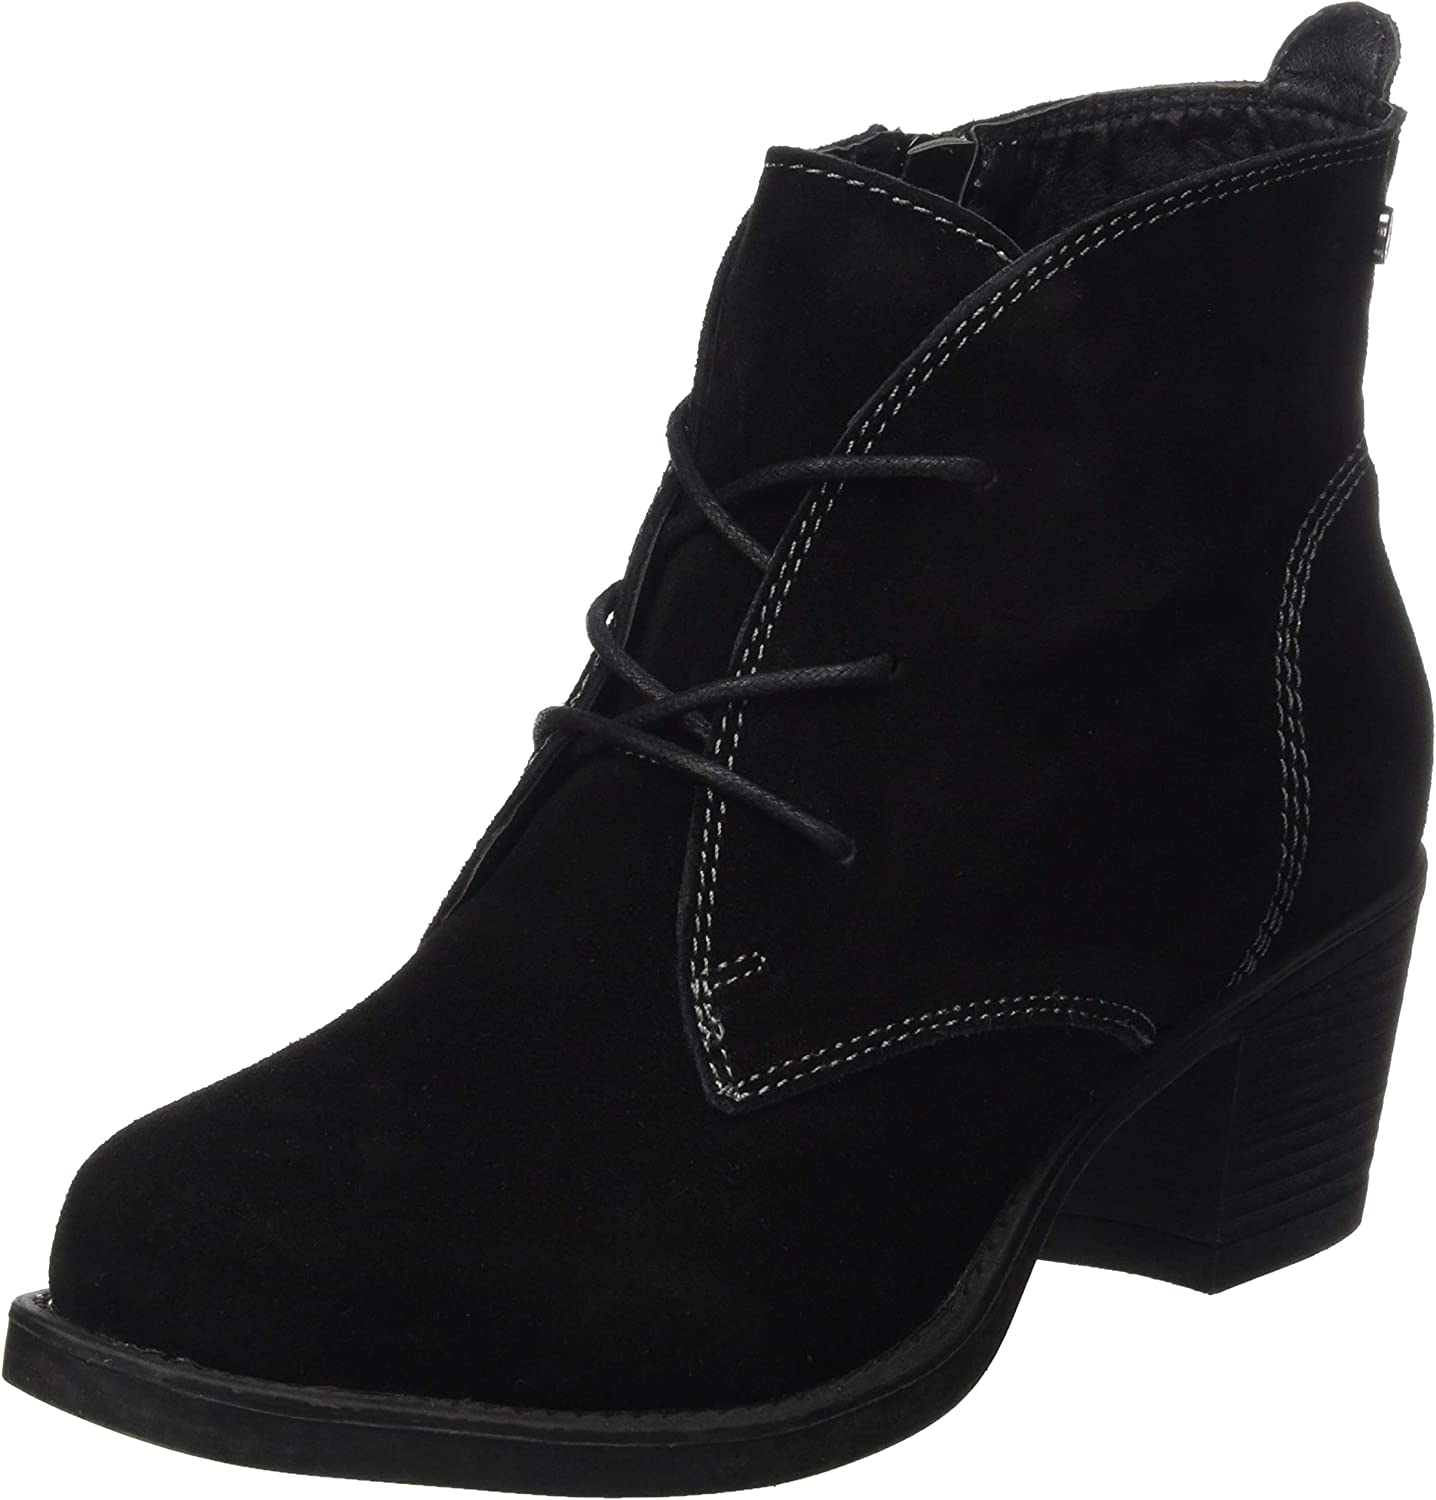 Hush Puppies Womens Moscow Laced Heel Boot Black Size UK 6 EU 39